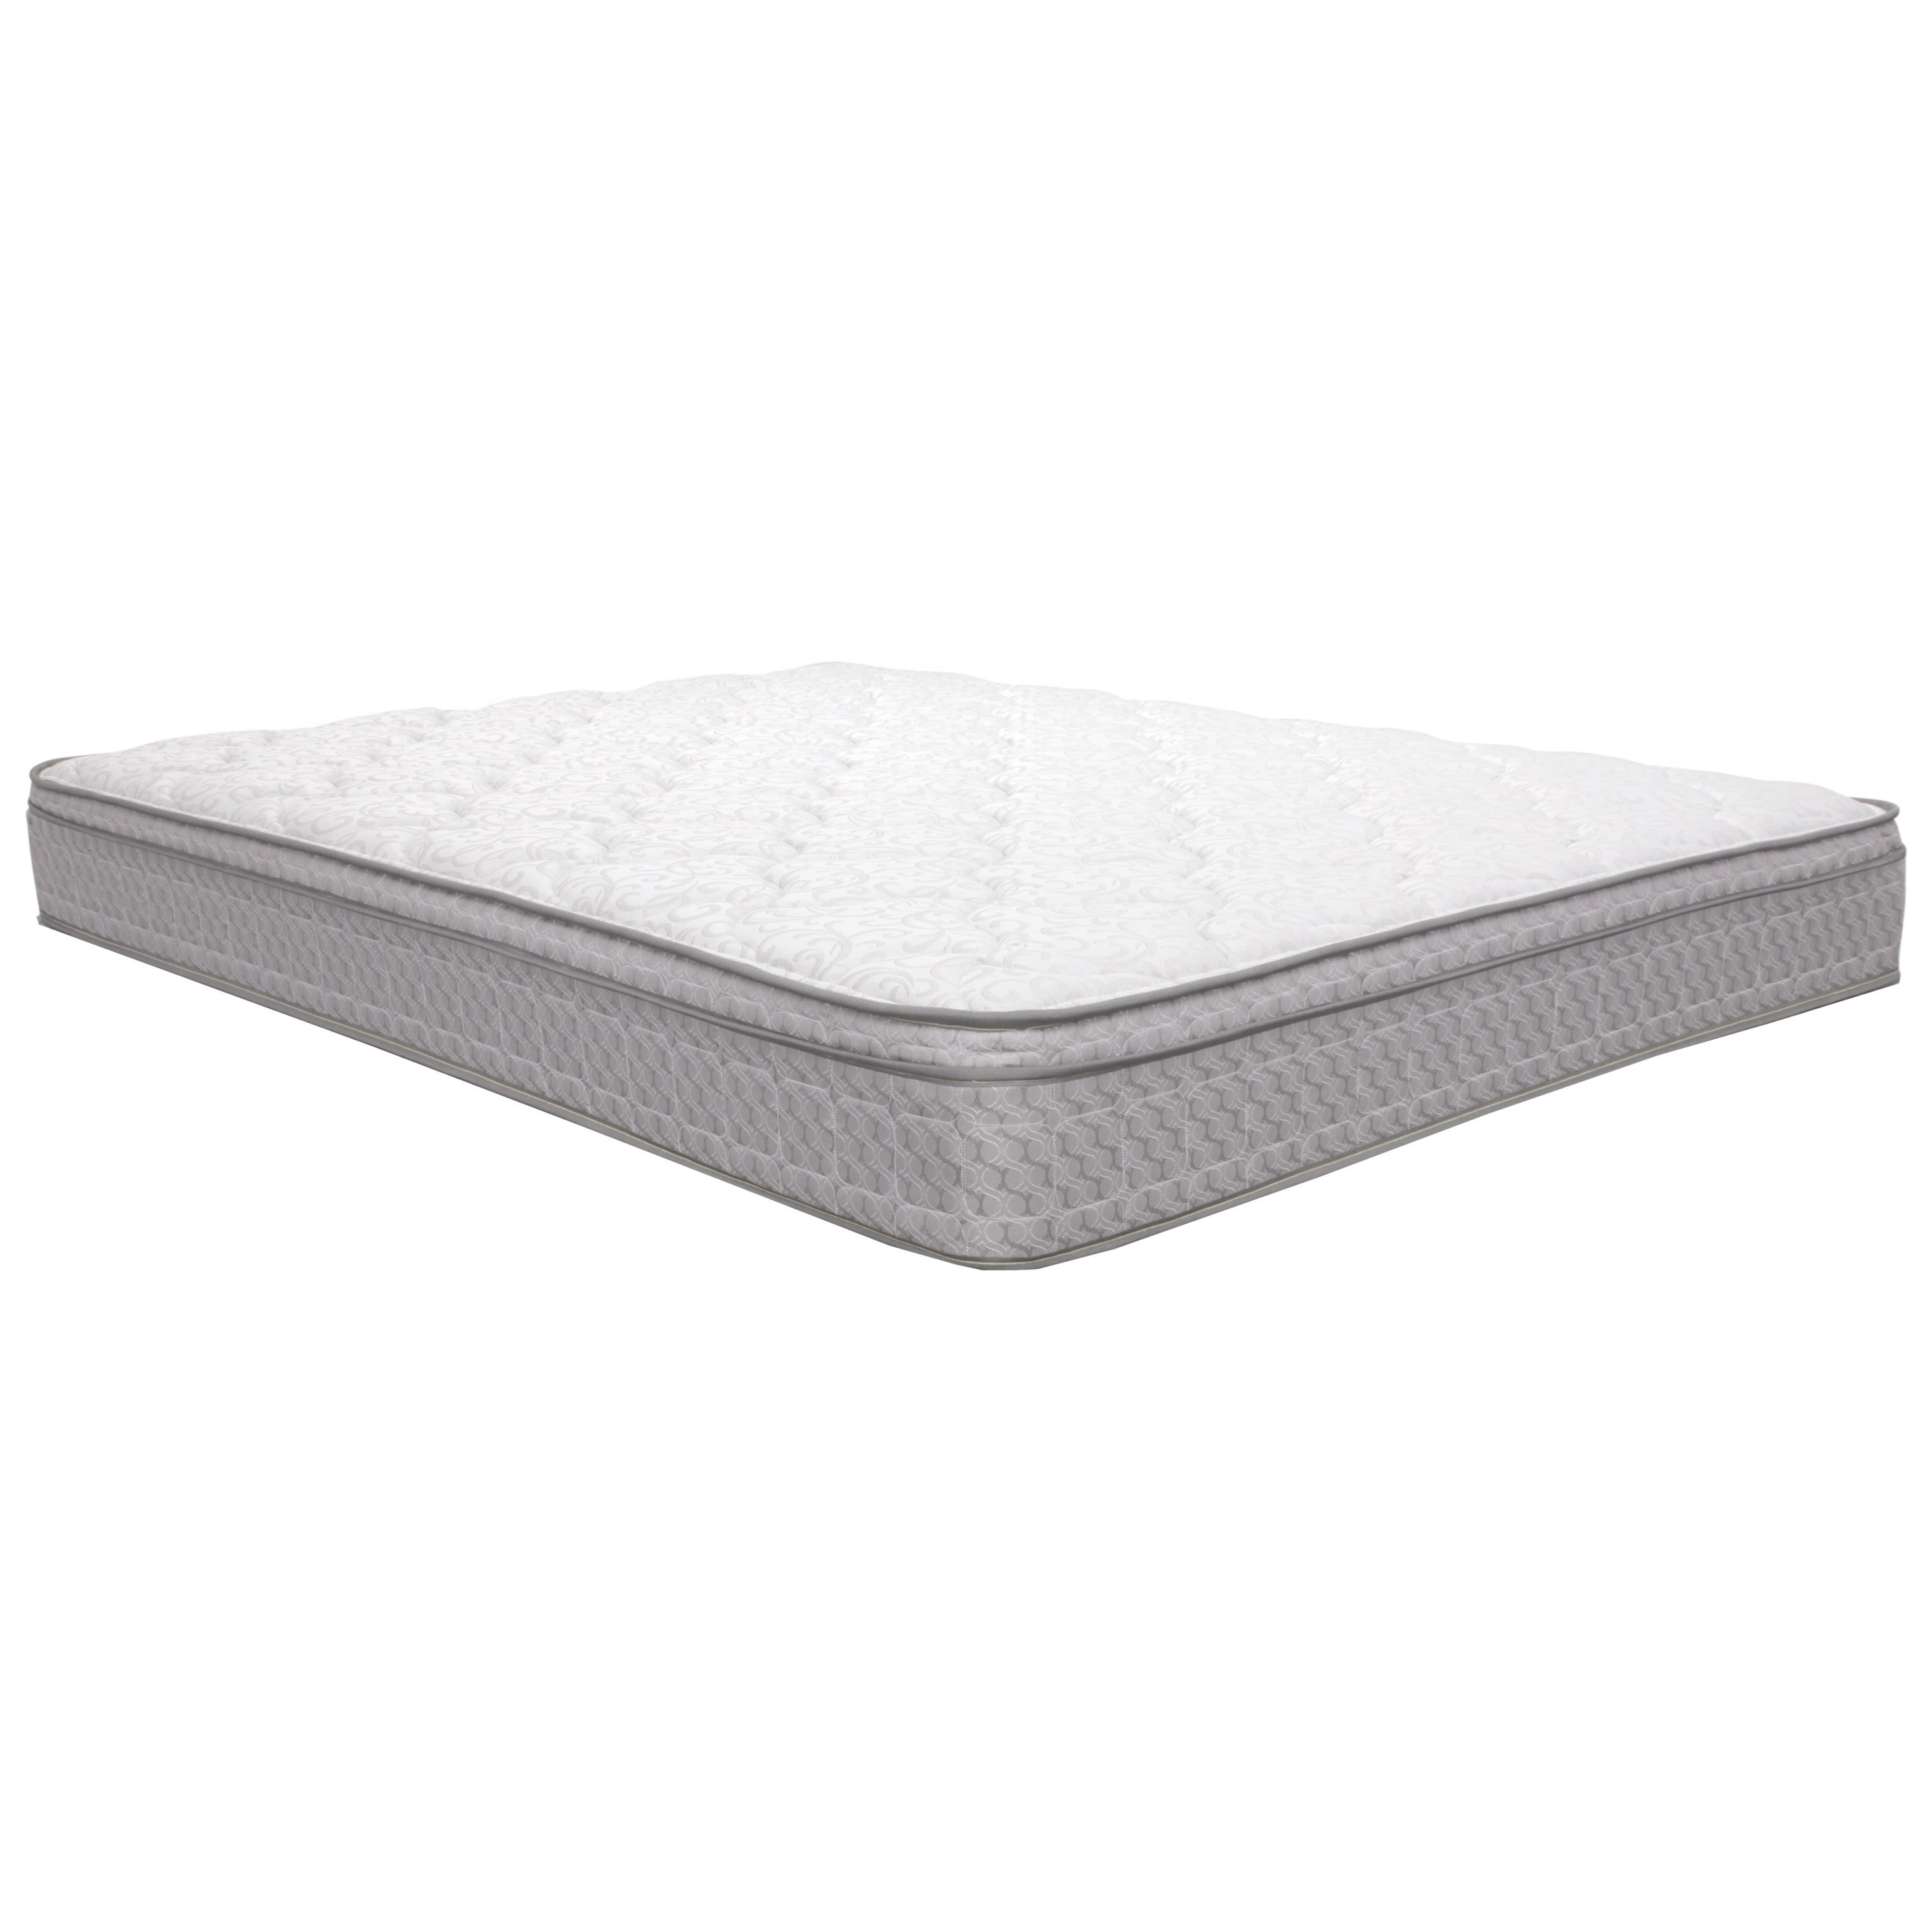 "Corsicana 1025 Broyton Euro Top Twin 9 1/2"" Euro Top Innerspring Mattress - Item Number: 1025-T"